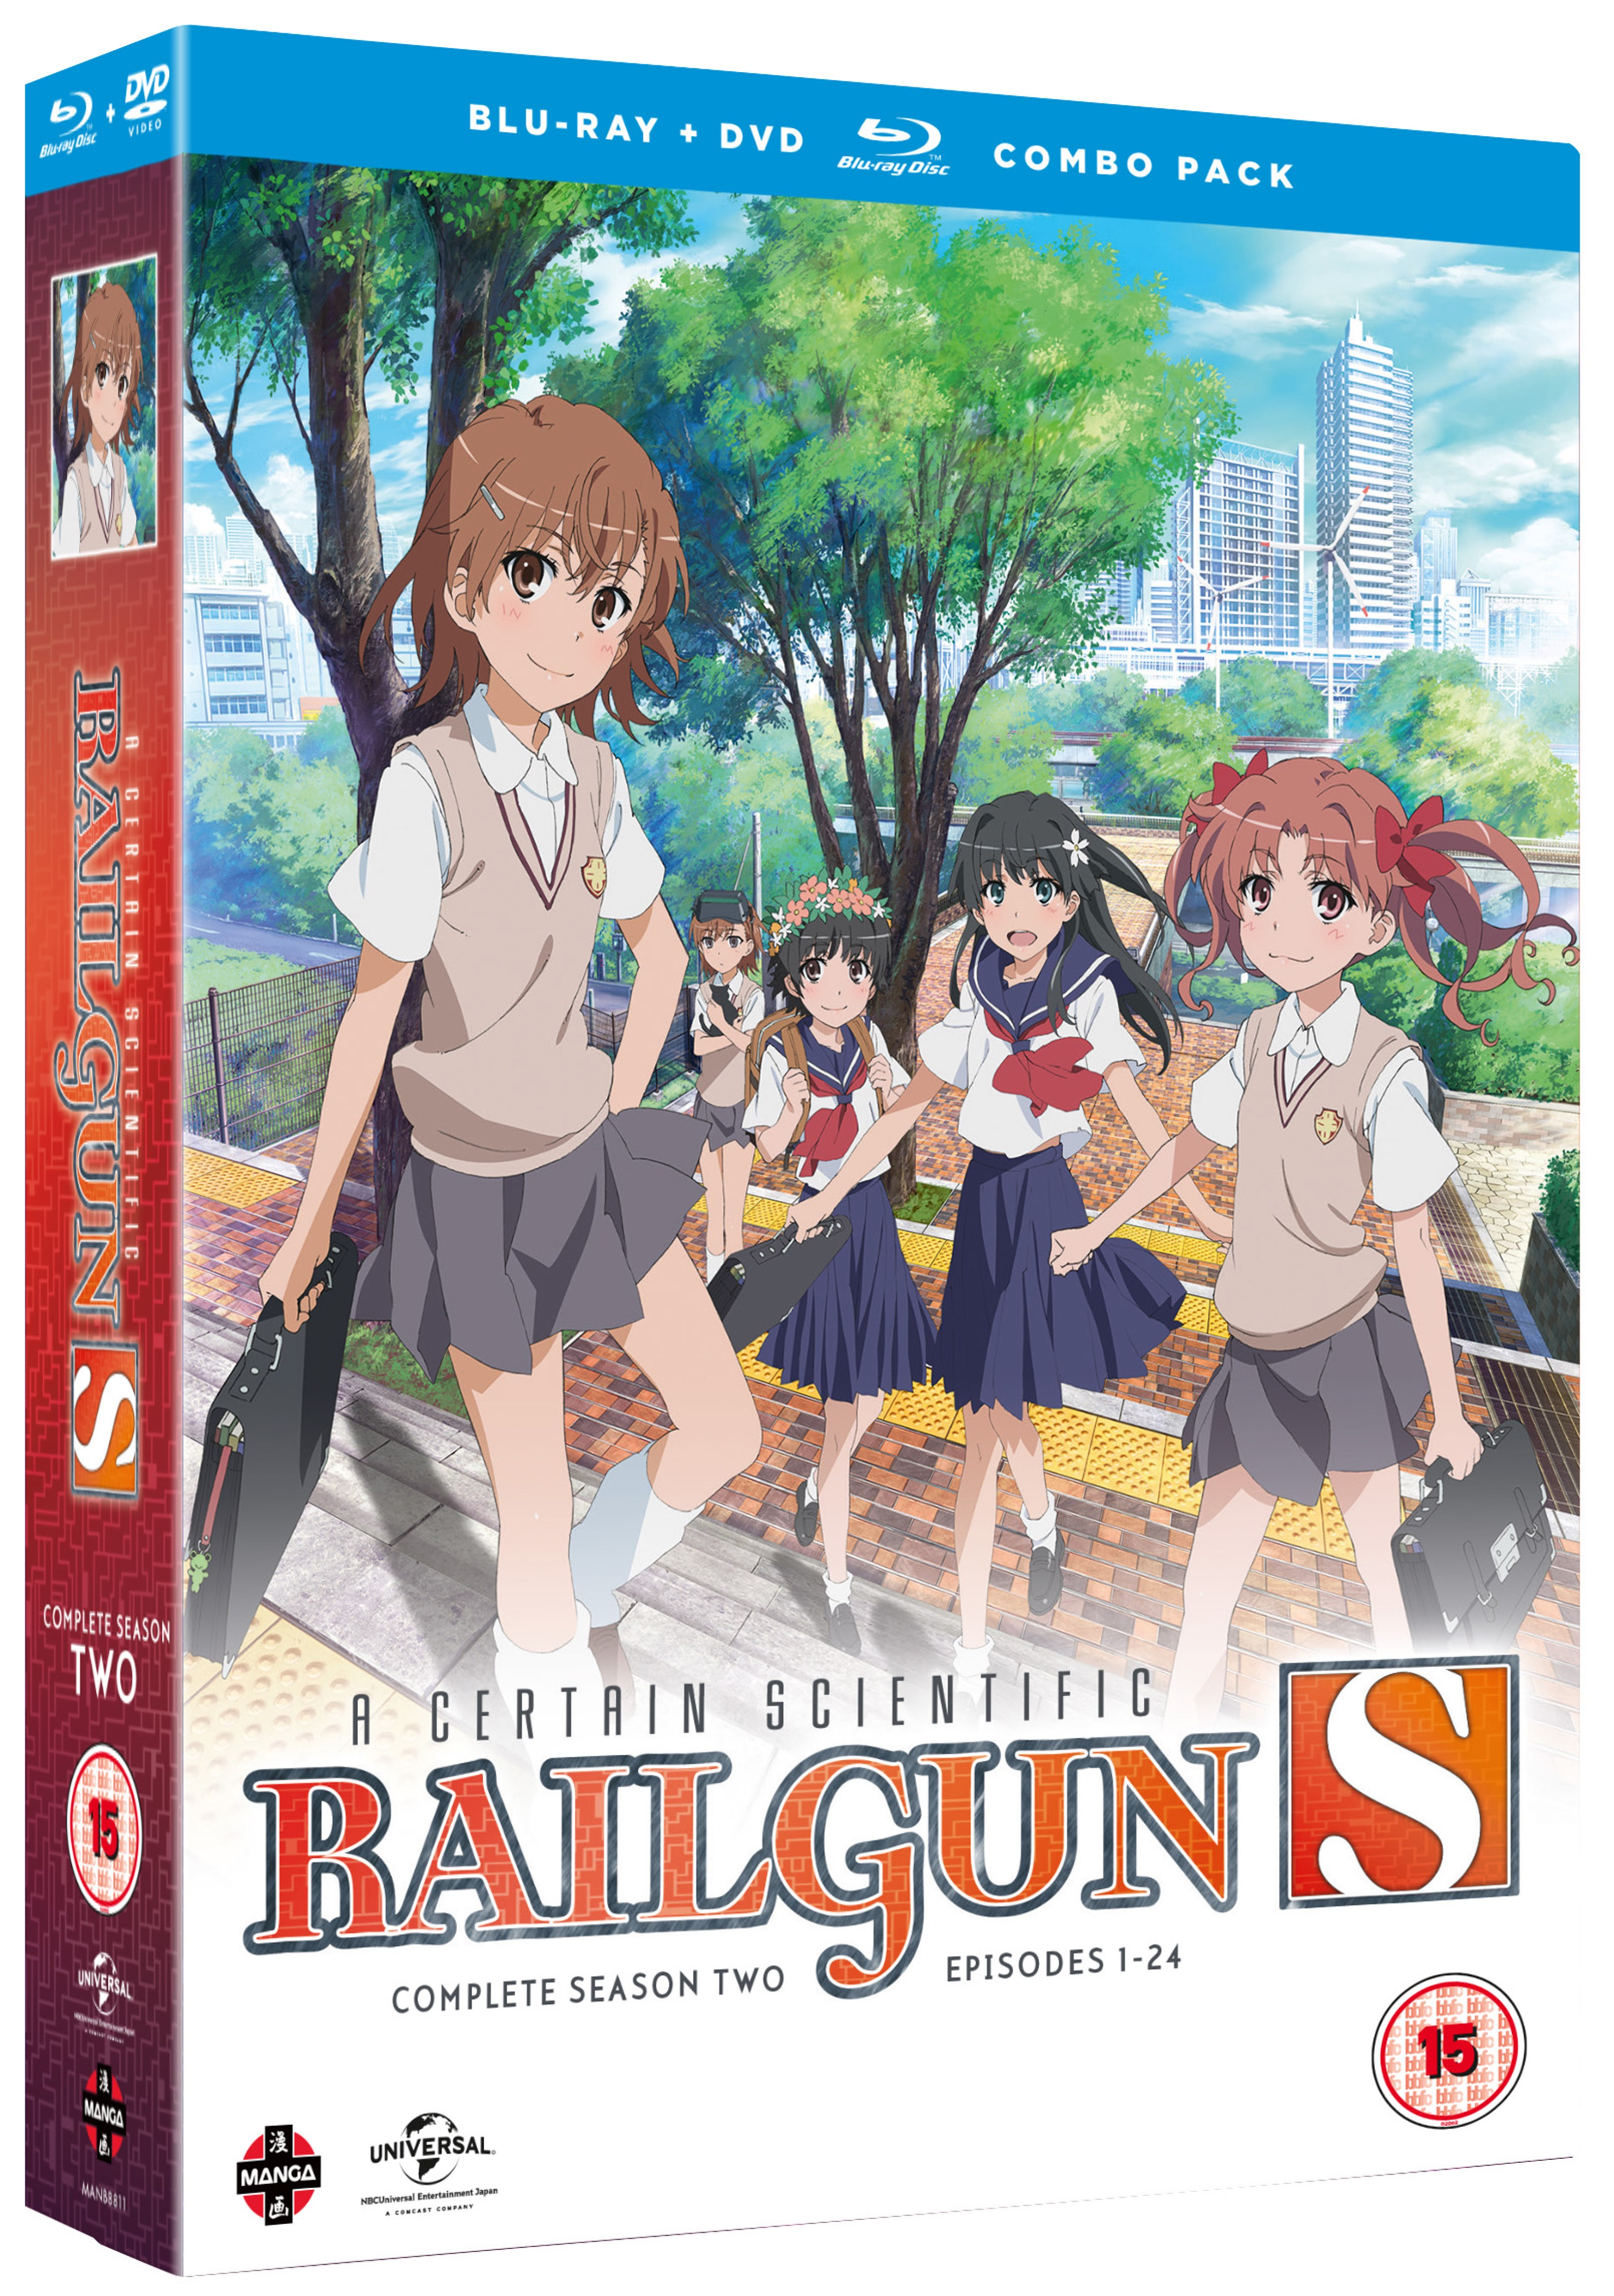 A Certain Scientific Railgun S: Complete Season 2 - 2